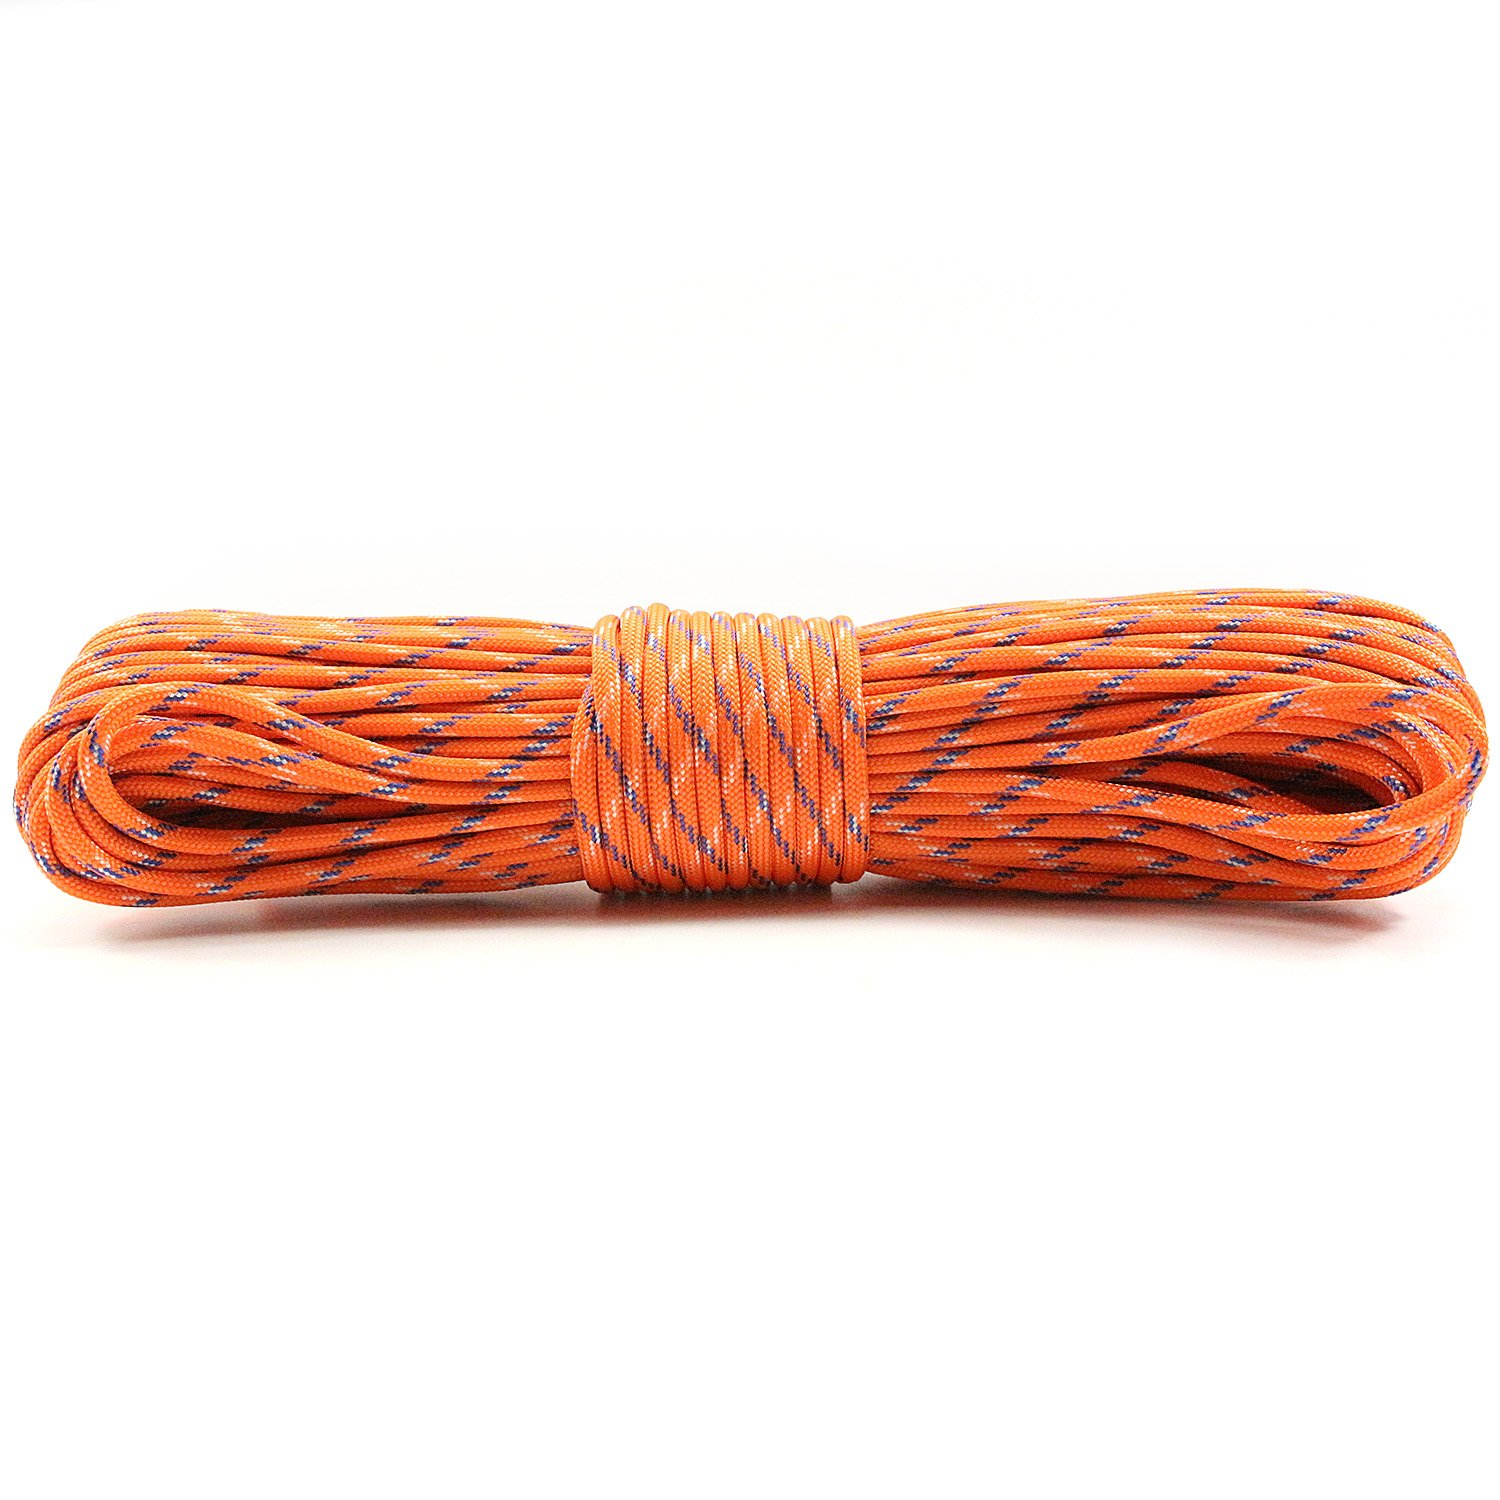 PSKOOK Survival Paracord Parachute Fire Cord Survival Ropes Red Tinder Cord PE Fishing Line Cotton Thread 7 Strands Outdoor 20, 25, 100 Feet (Orange Camo, 100)